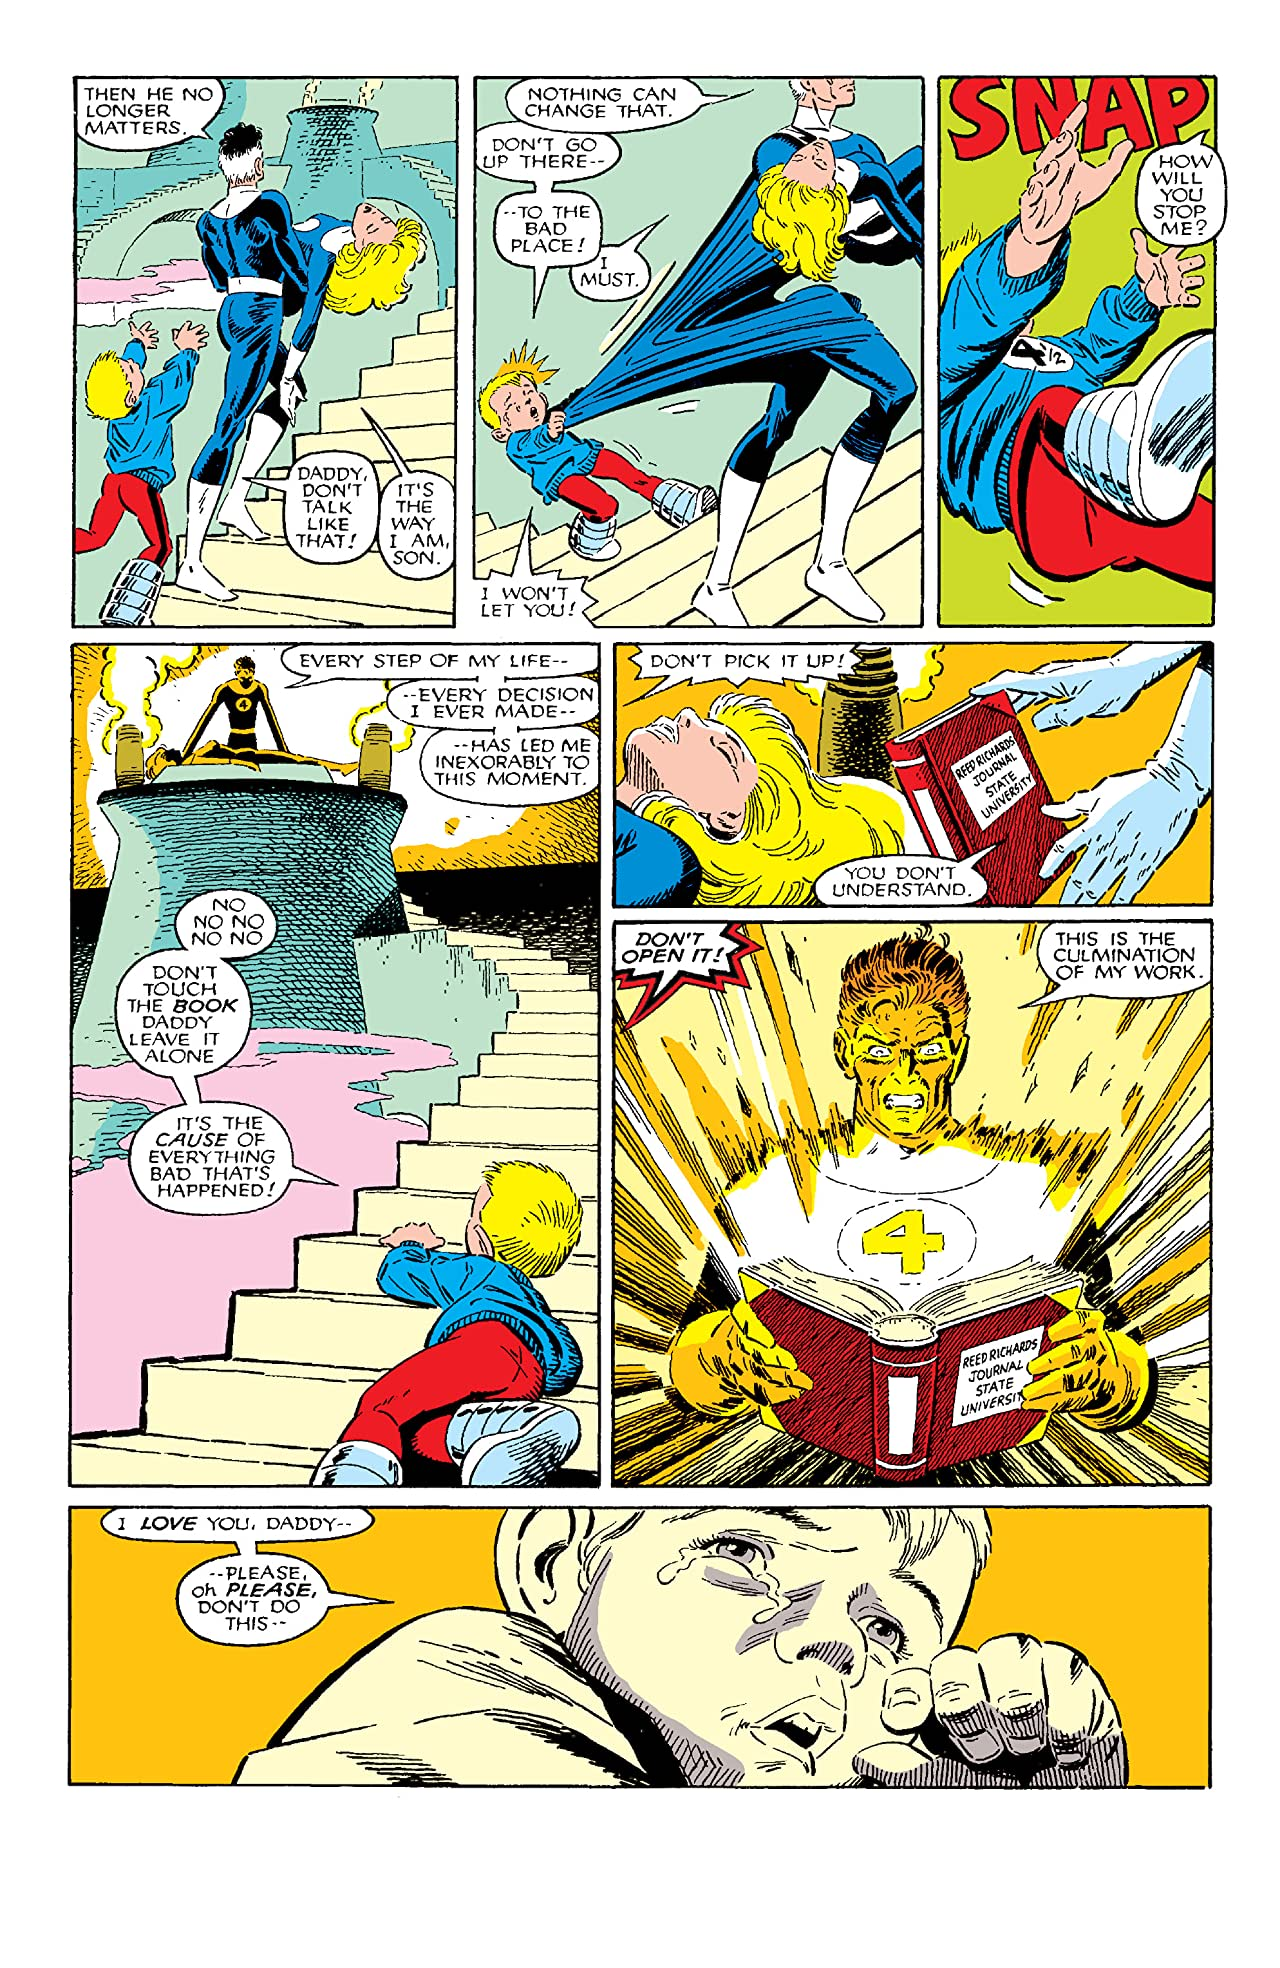 Fantastic Four vs. X-Men (1987) #1 (of 4)